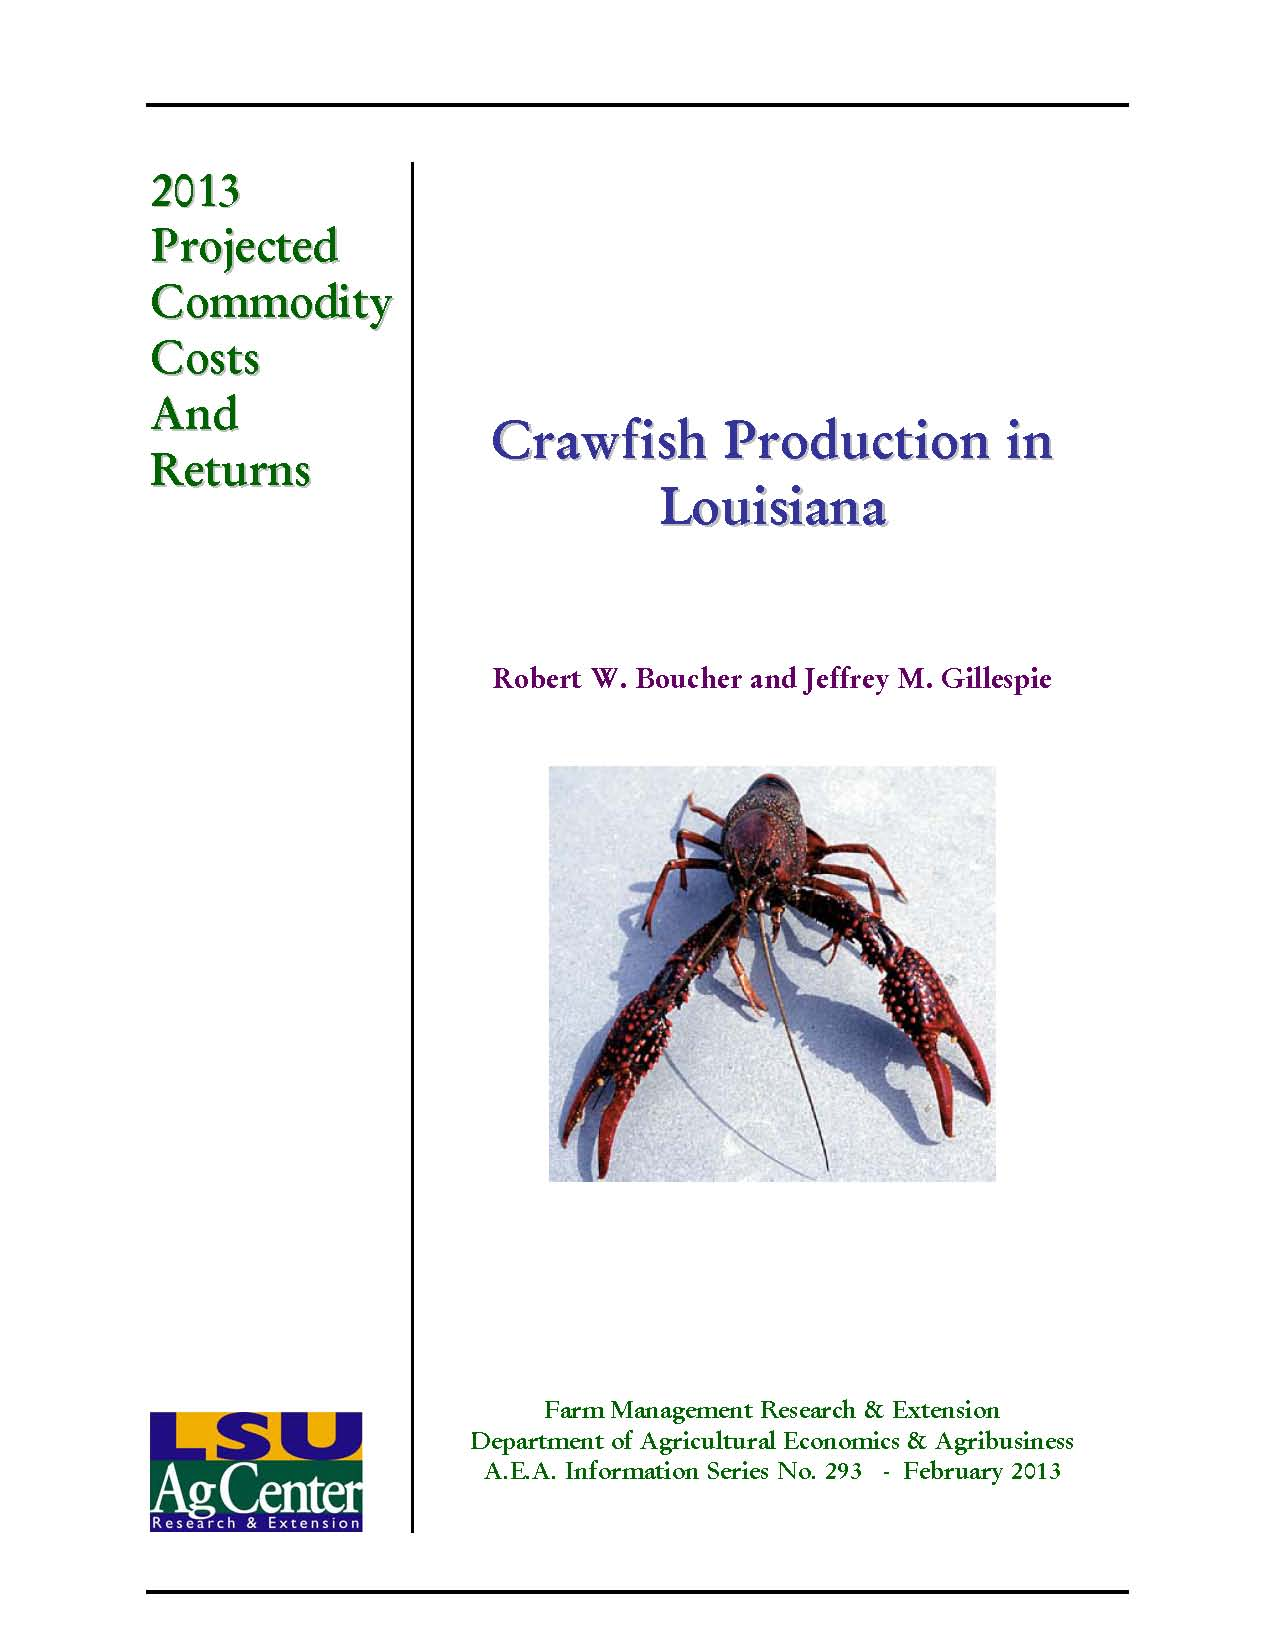 Projected Costs and Returns for Crawfish Production in Louisiana 2013